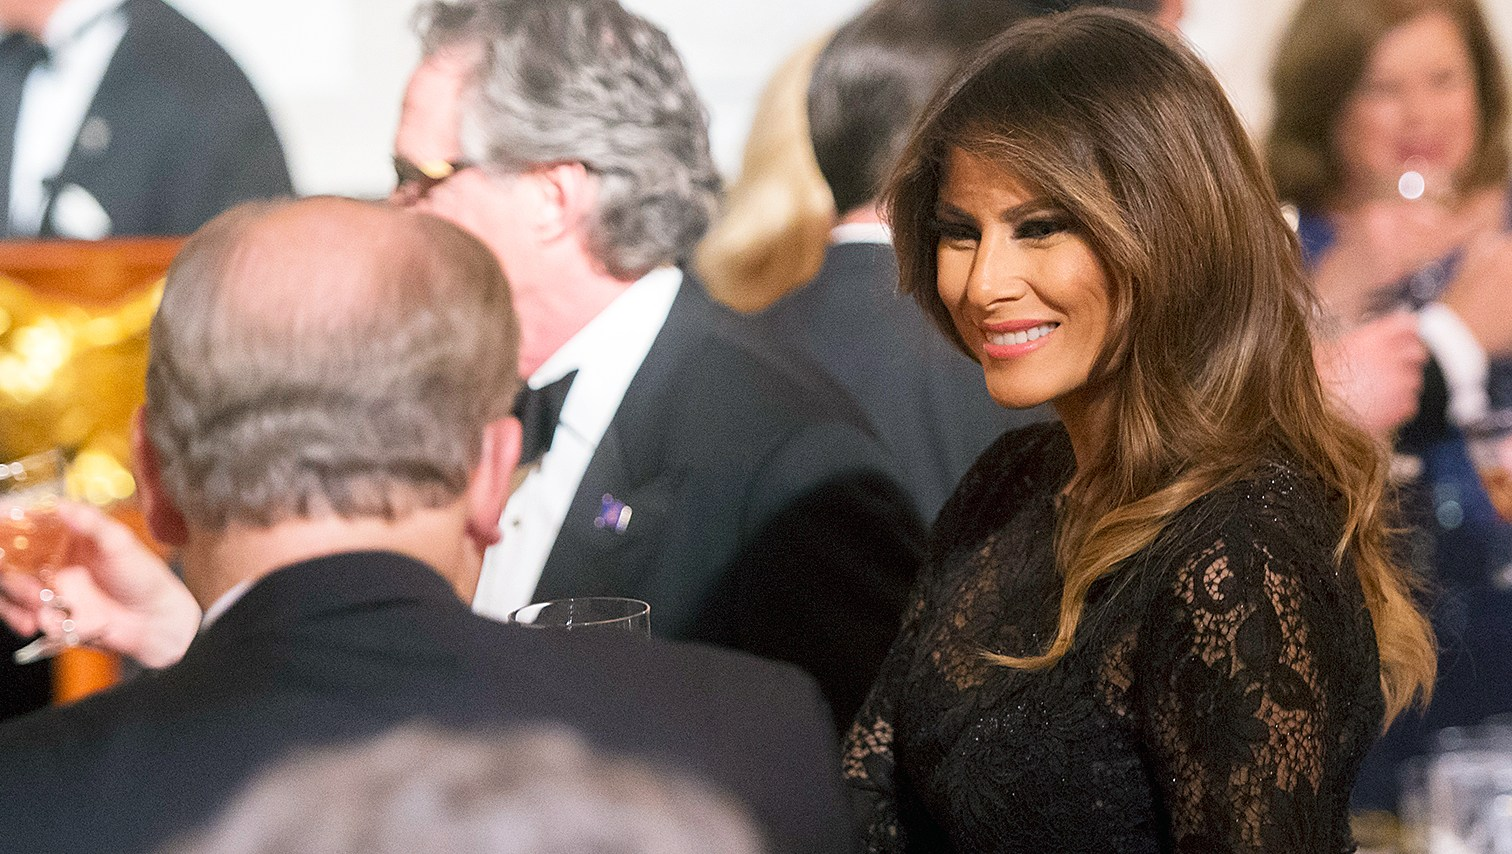 Melania Trump Steps Out After Donald Trump Affair Allegations